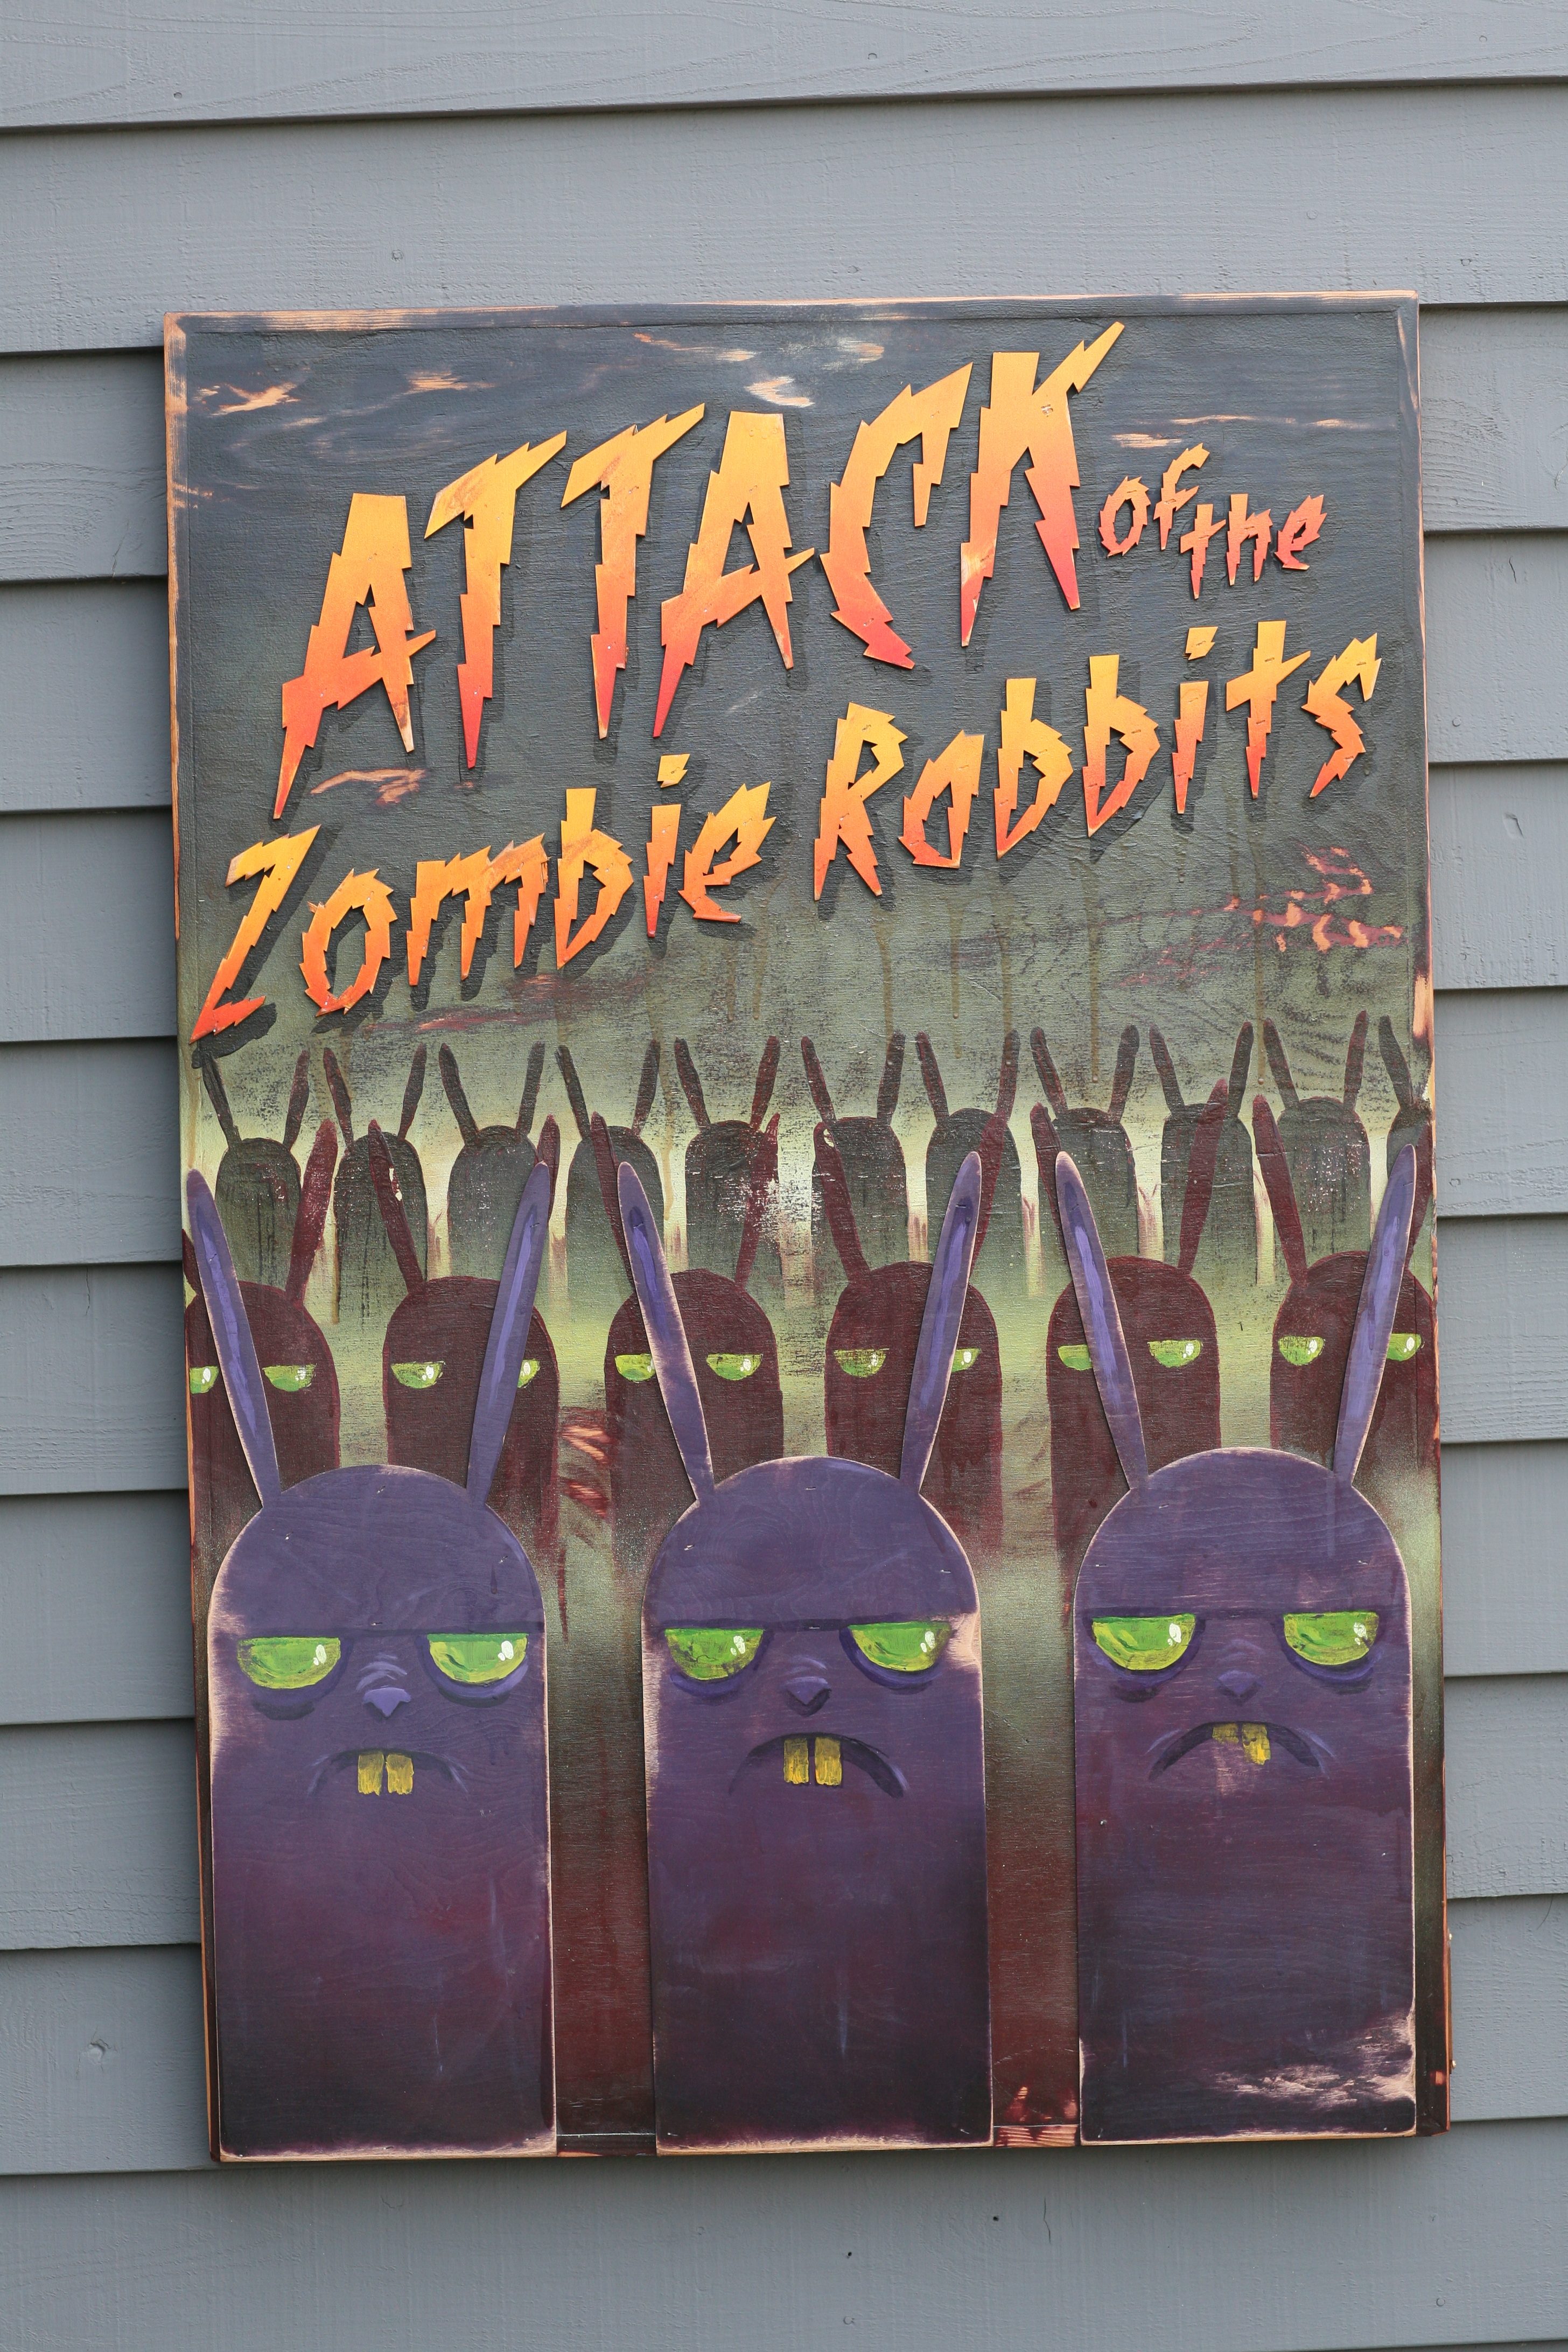 Attack of the Zombie Rabbits